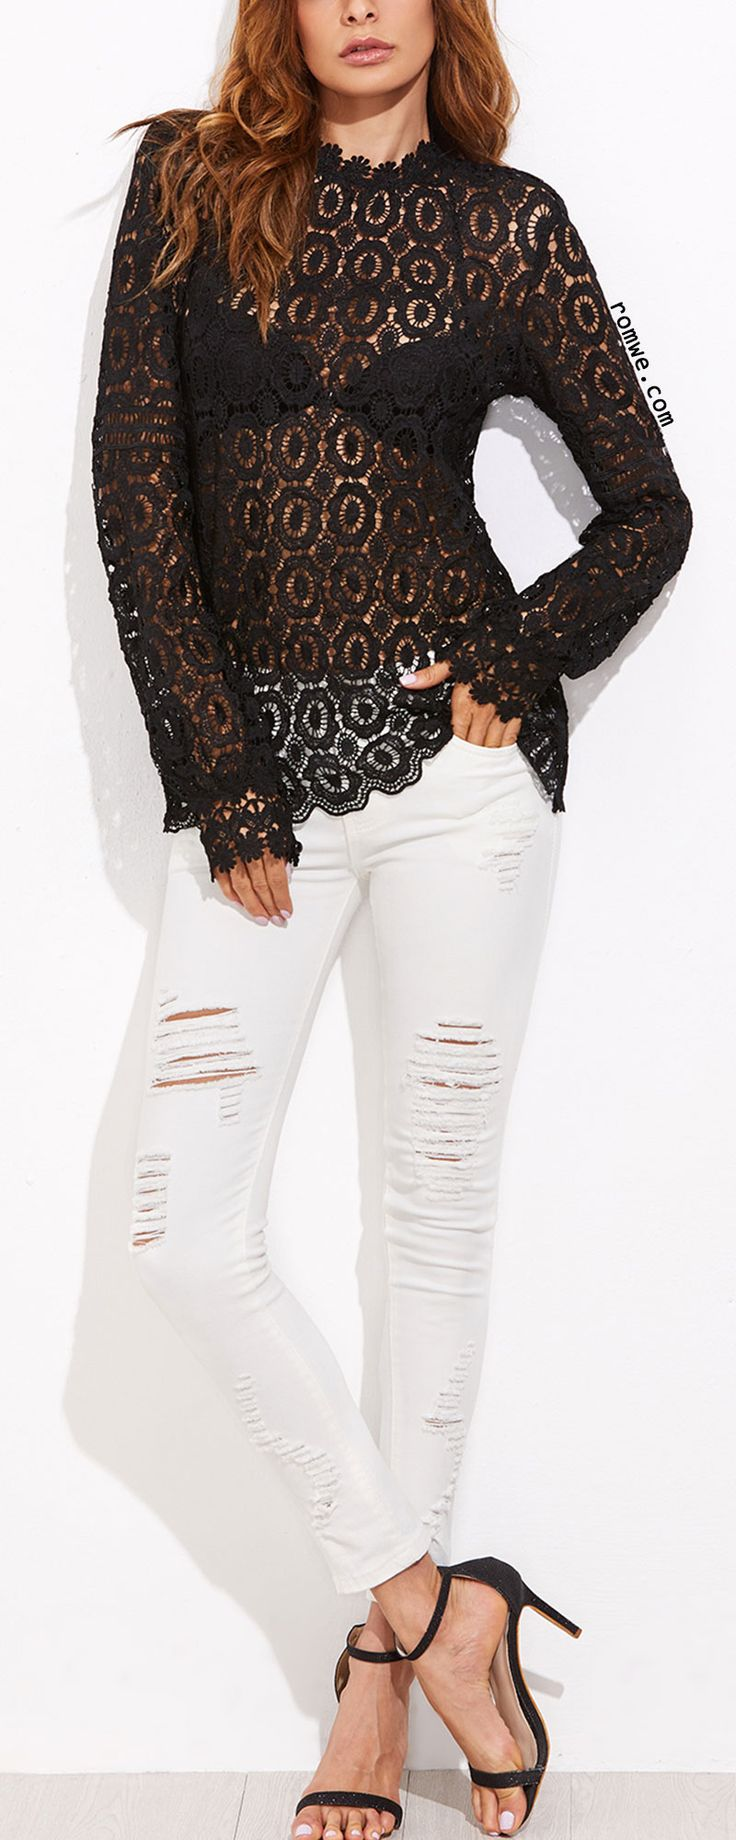 Black Hollow Out Floral Crochet Top